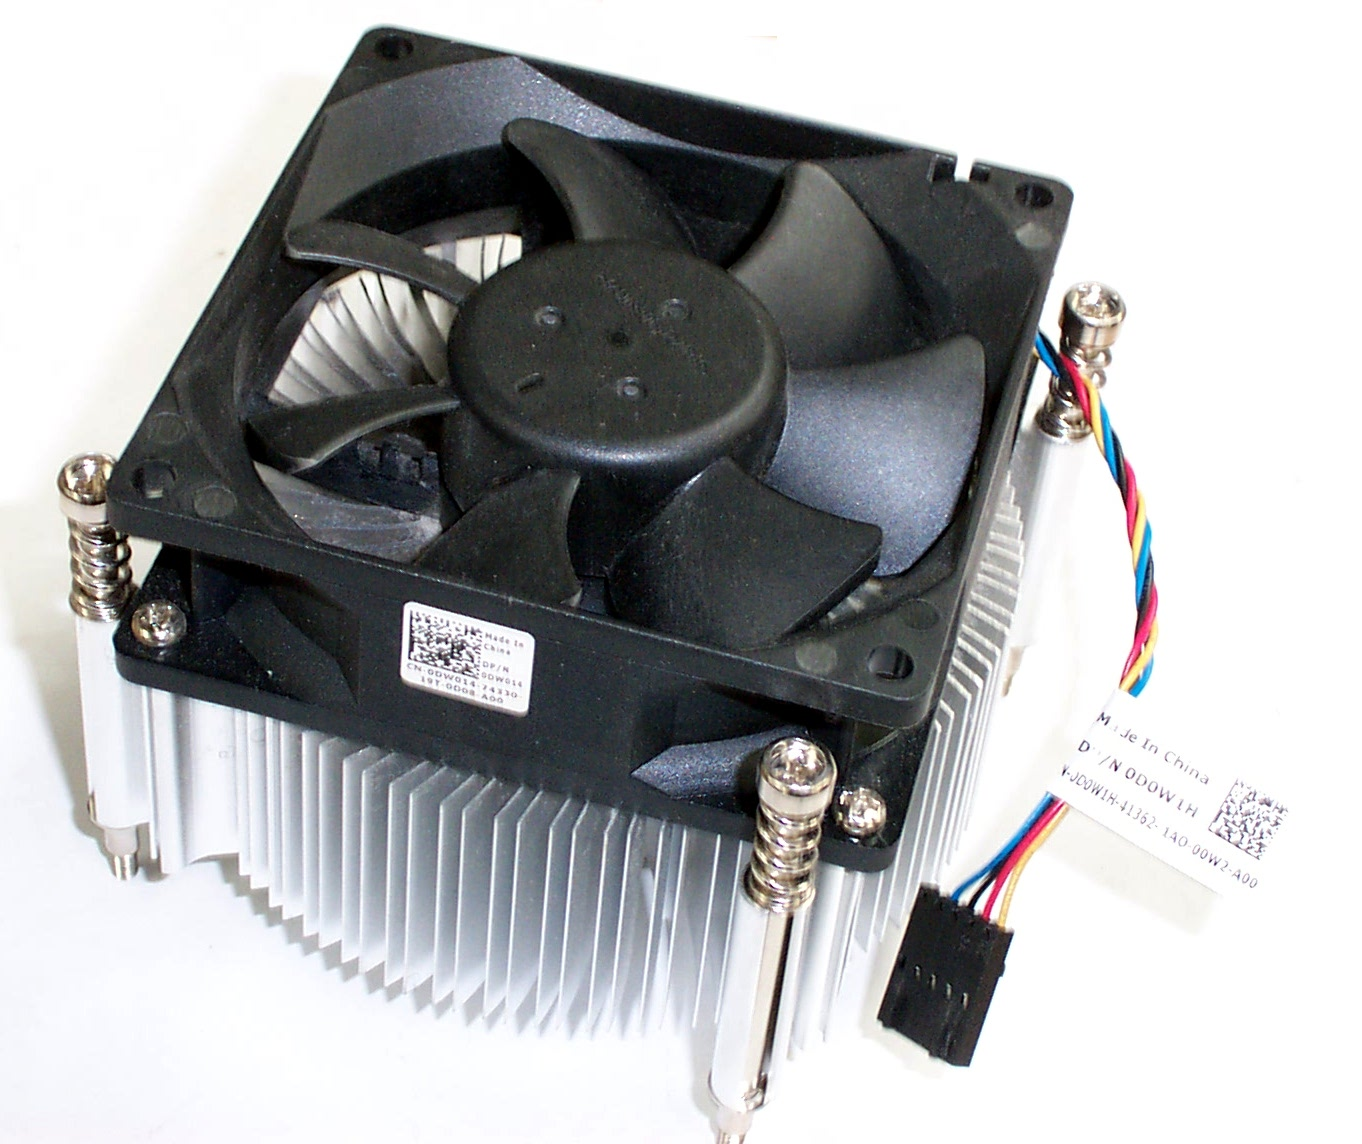 Dell DW014 OptiPlex 990 Heatsink and Fan - 9XJXY